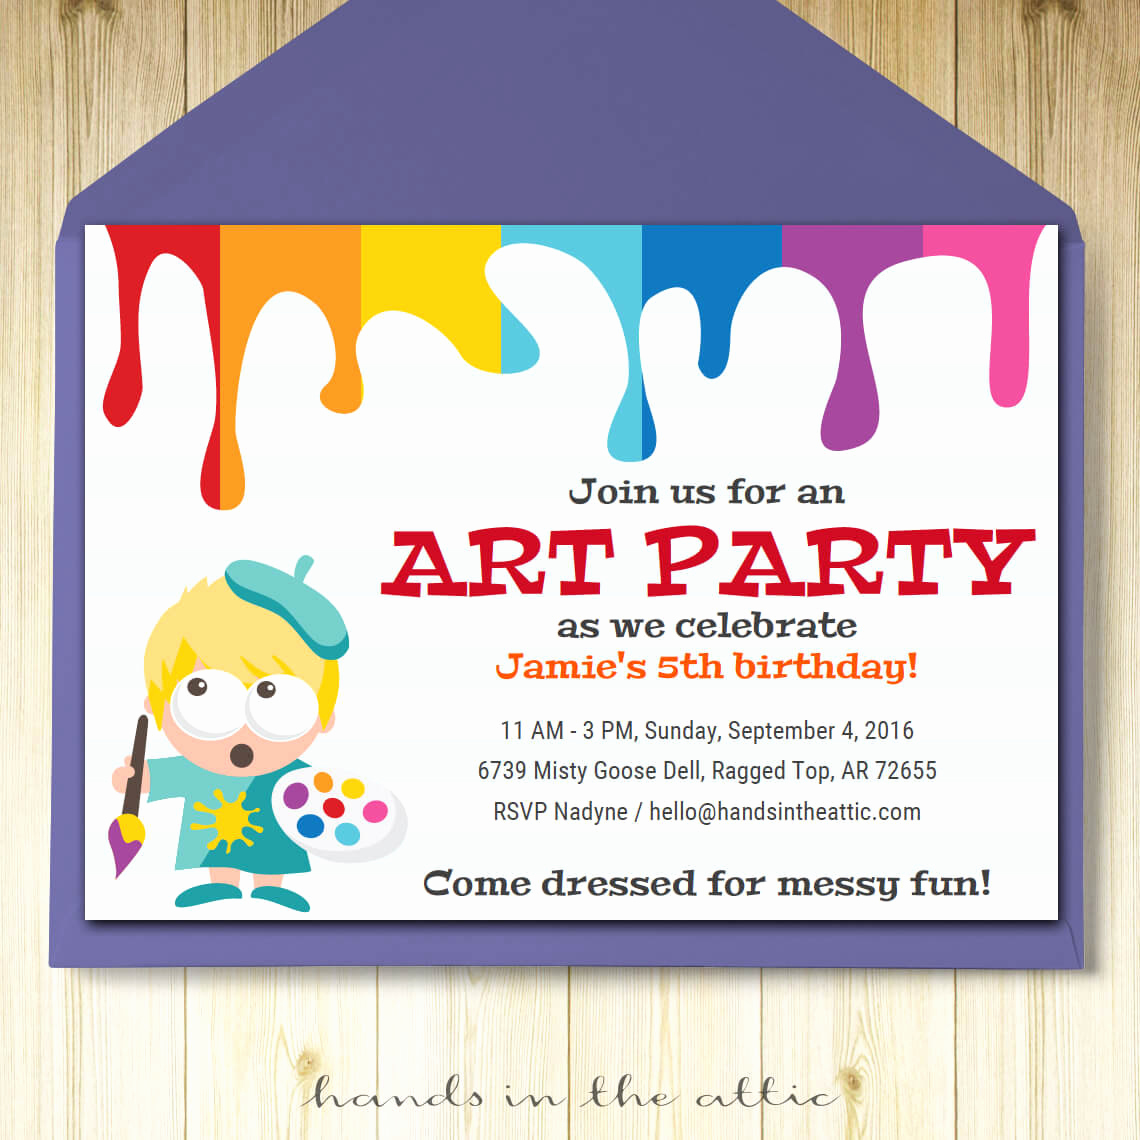 Printable Birthday Invitation Cards Unique Art Party Invitation Card Template Printable Kids Painting